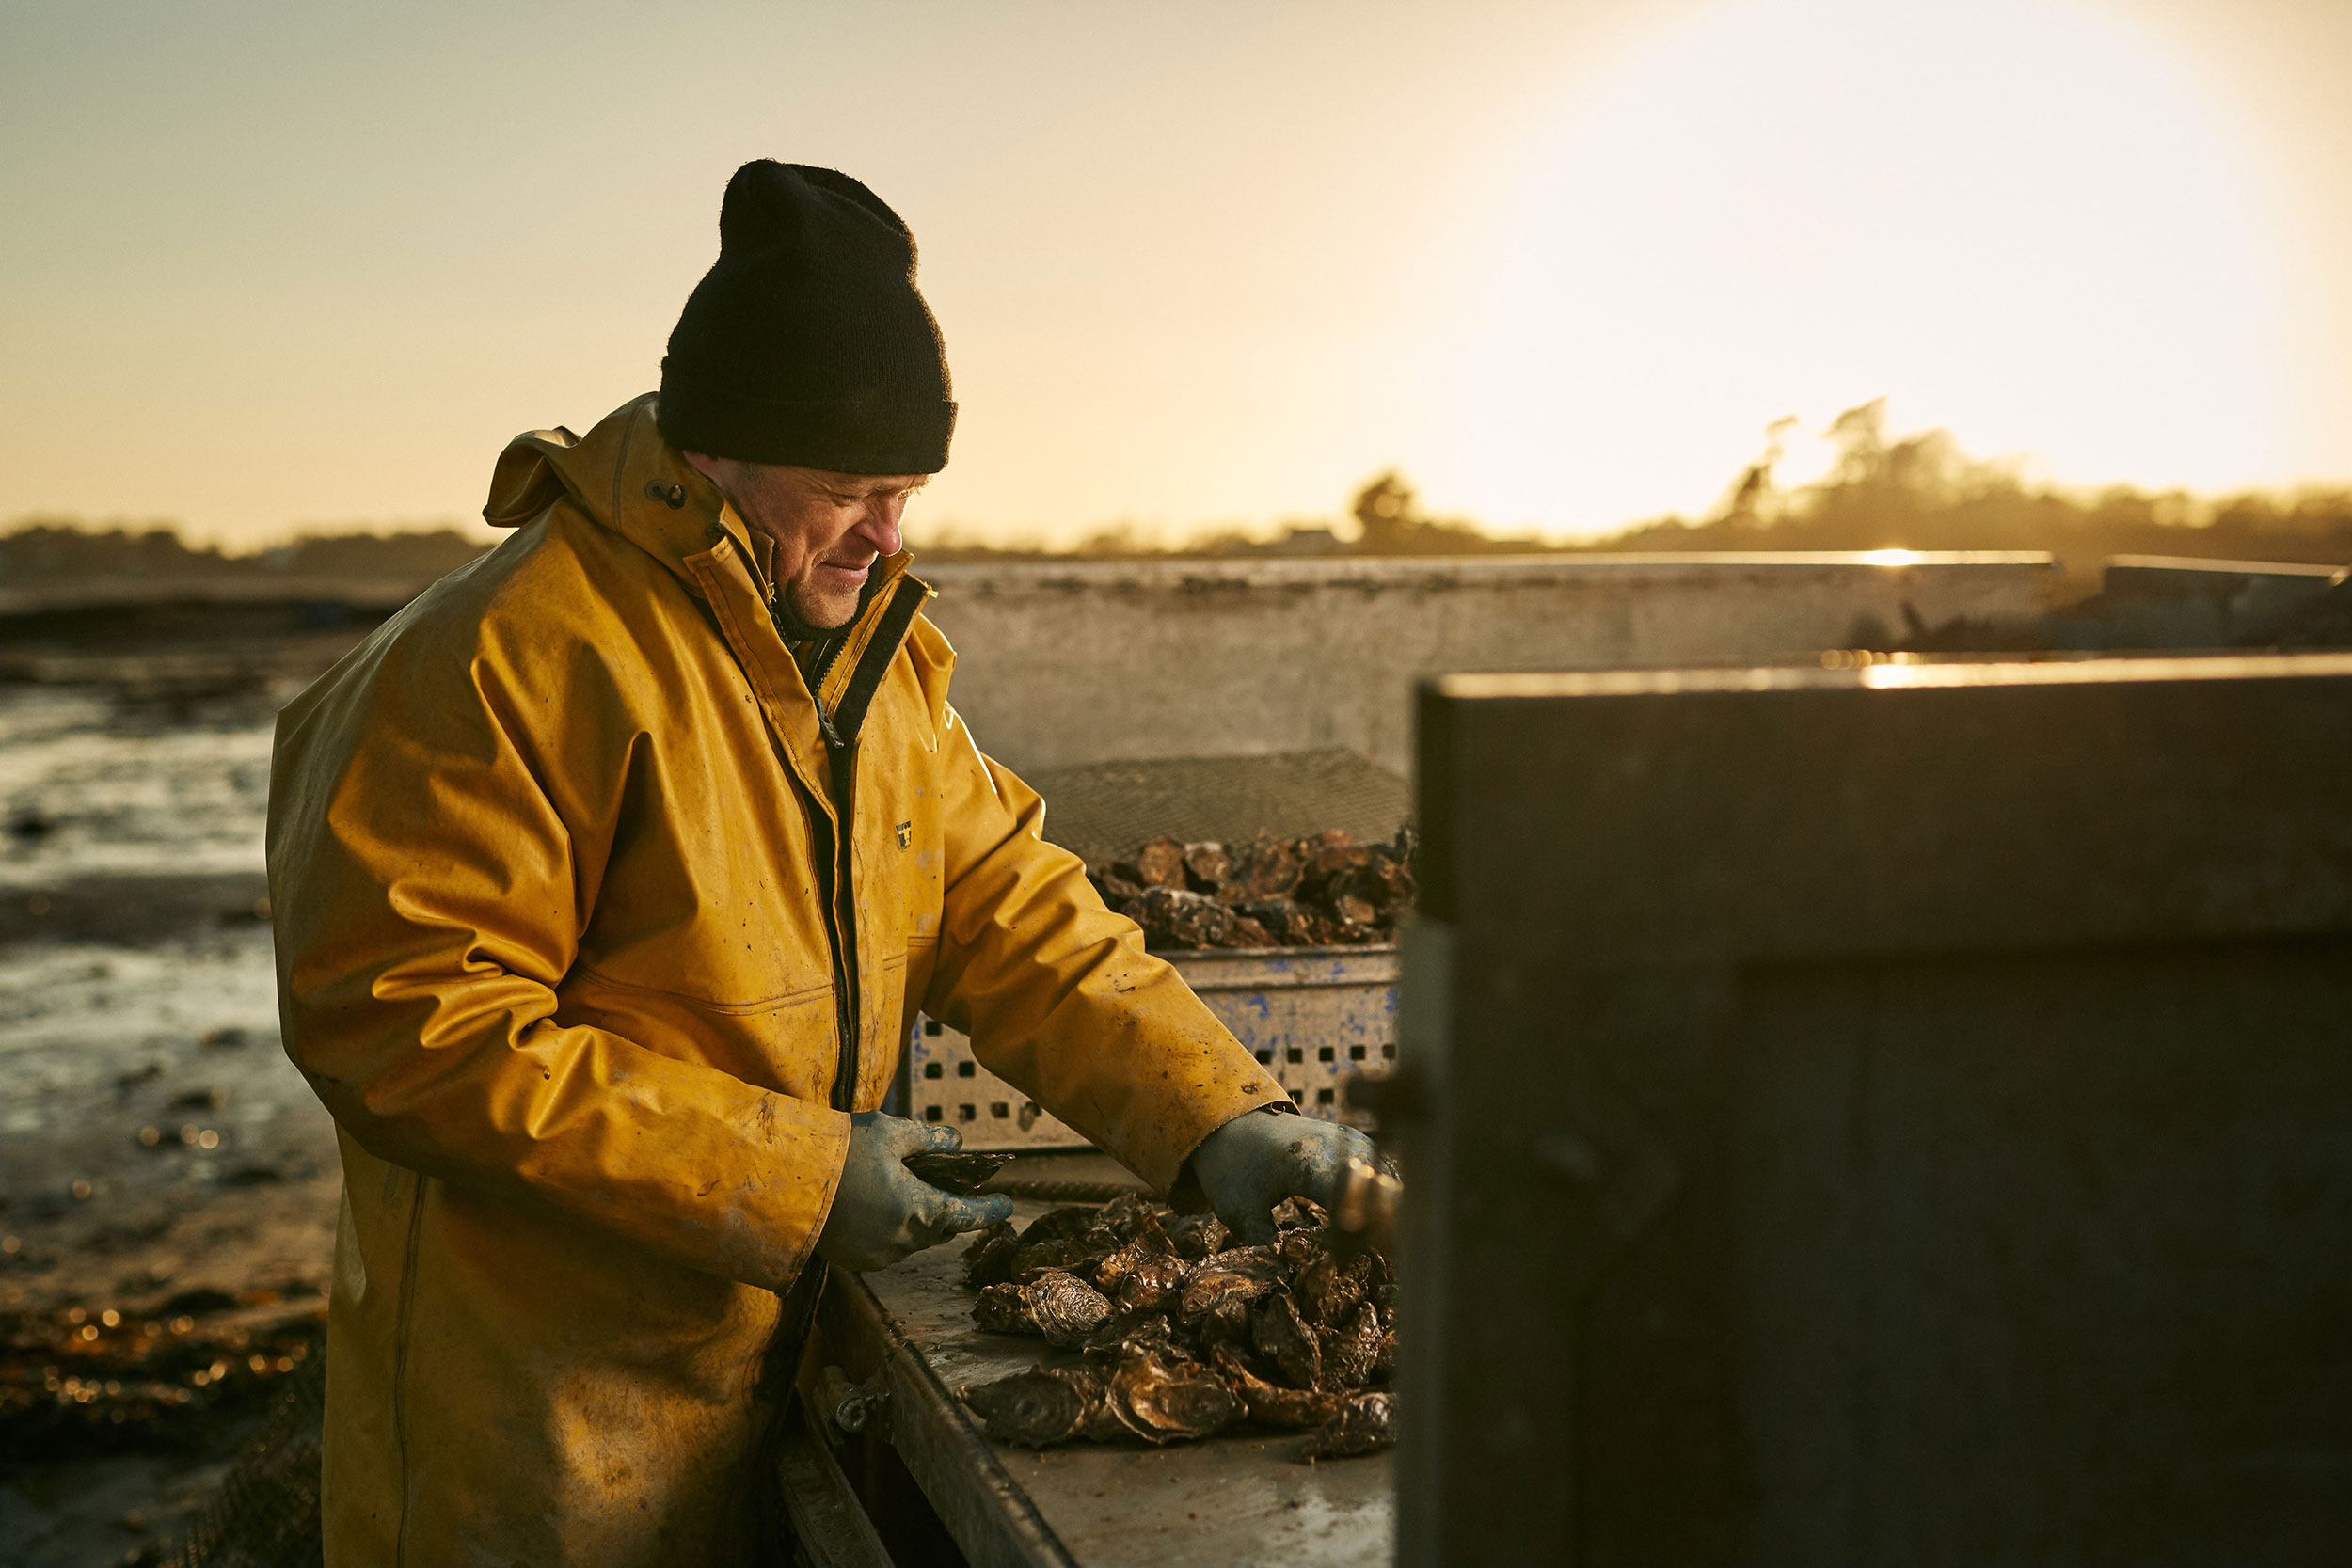 Oyster farmer, Shaun Krijen tends to his oyster catch by the Menai Strait by documentary photographer Duncan Elliott